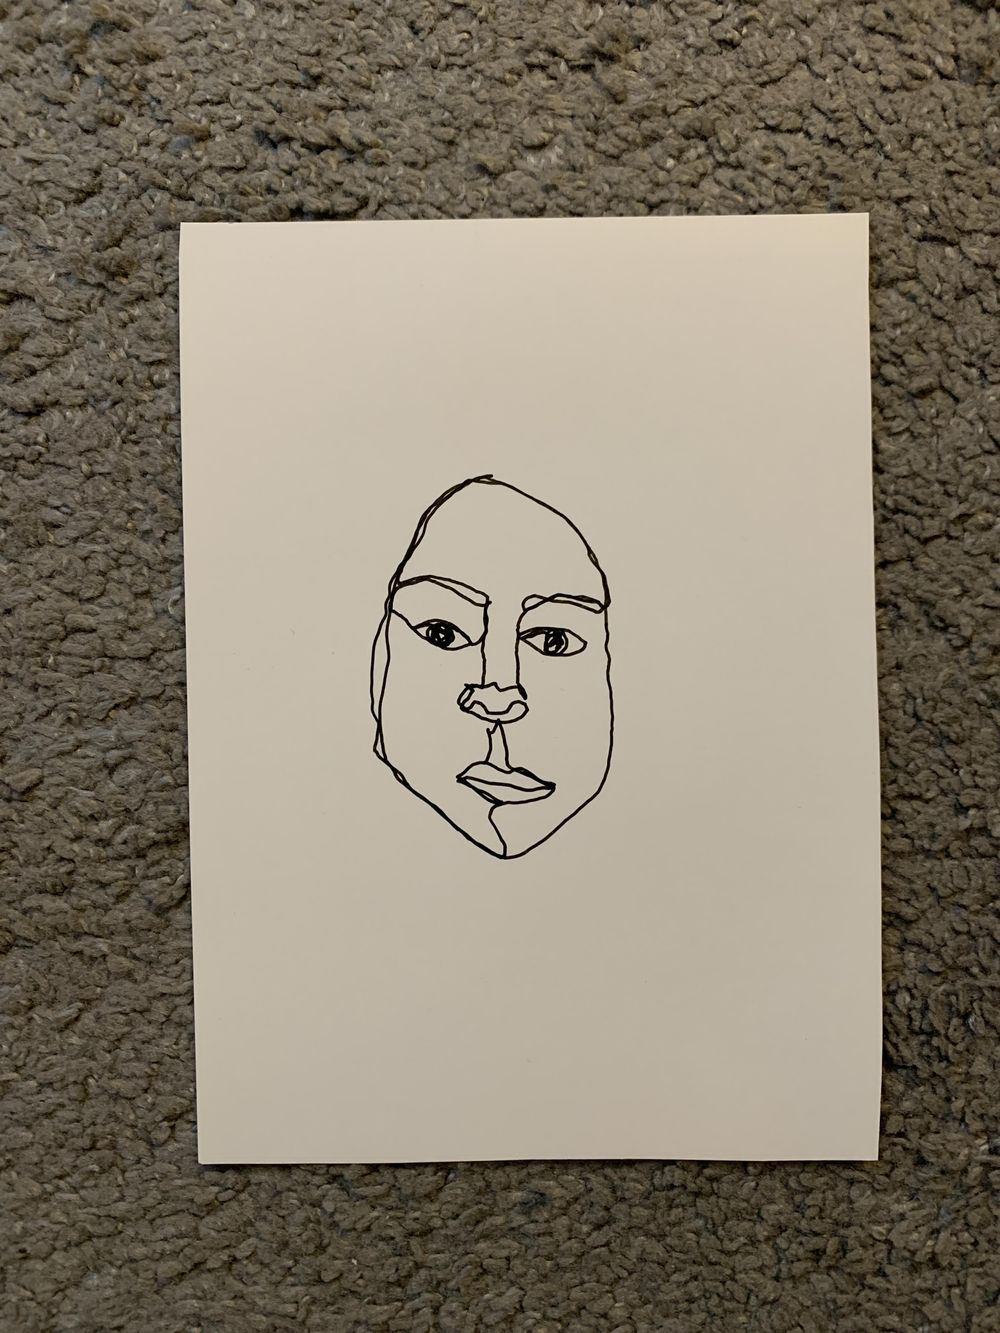 Faces - image 2 - student project